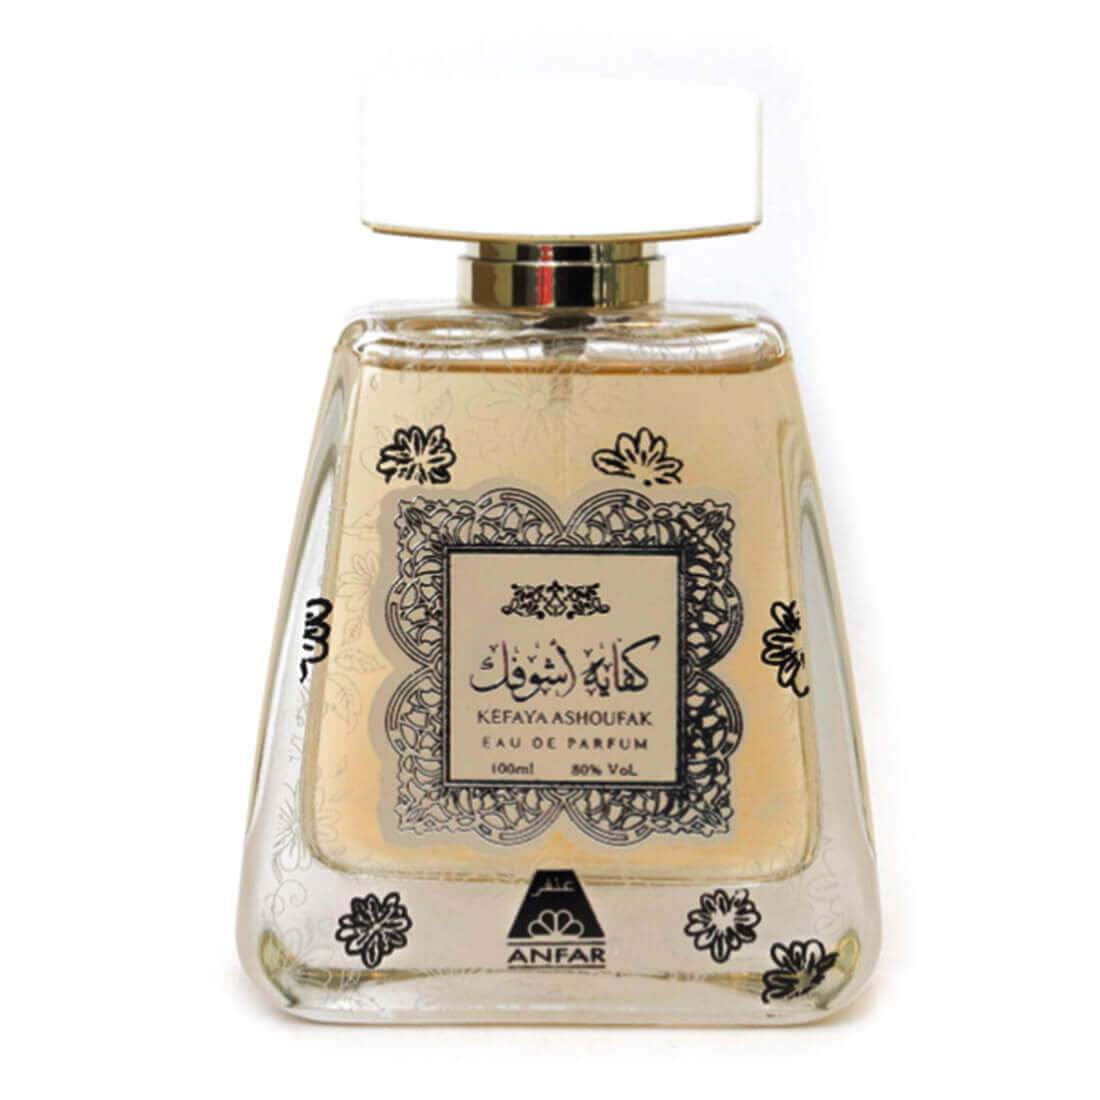 Anfar Kefaya Ashoufak Spray - 100ml